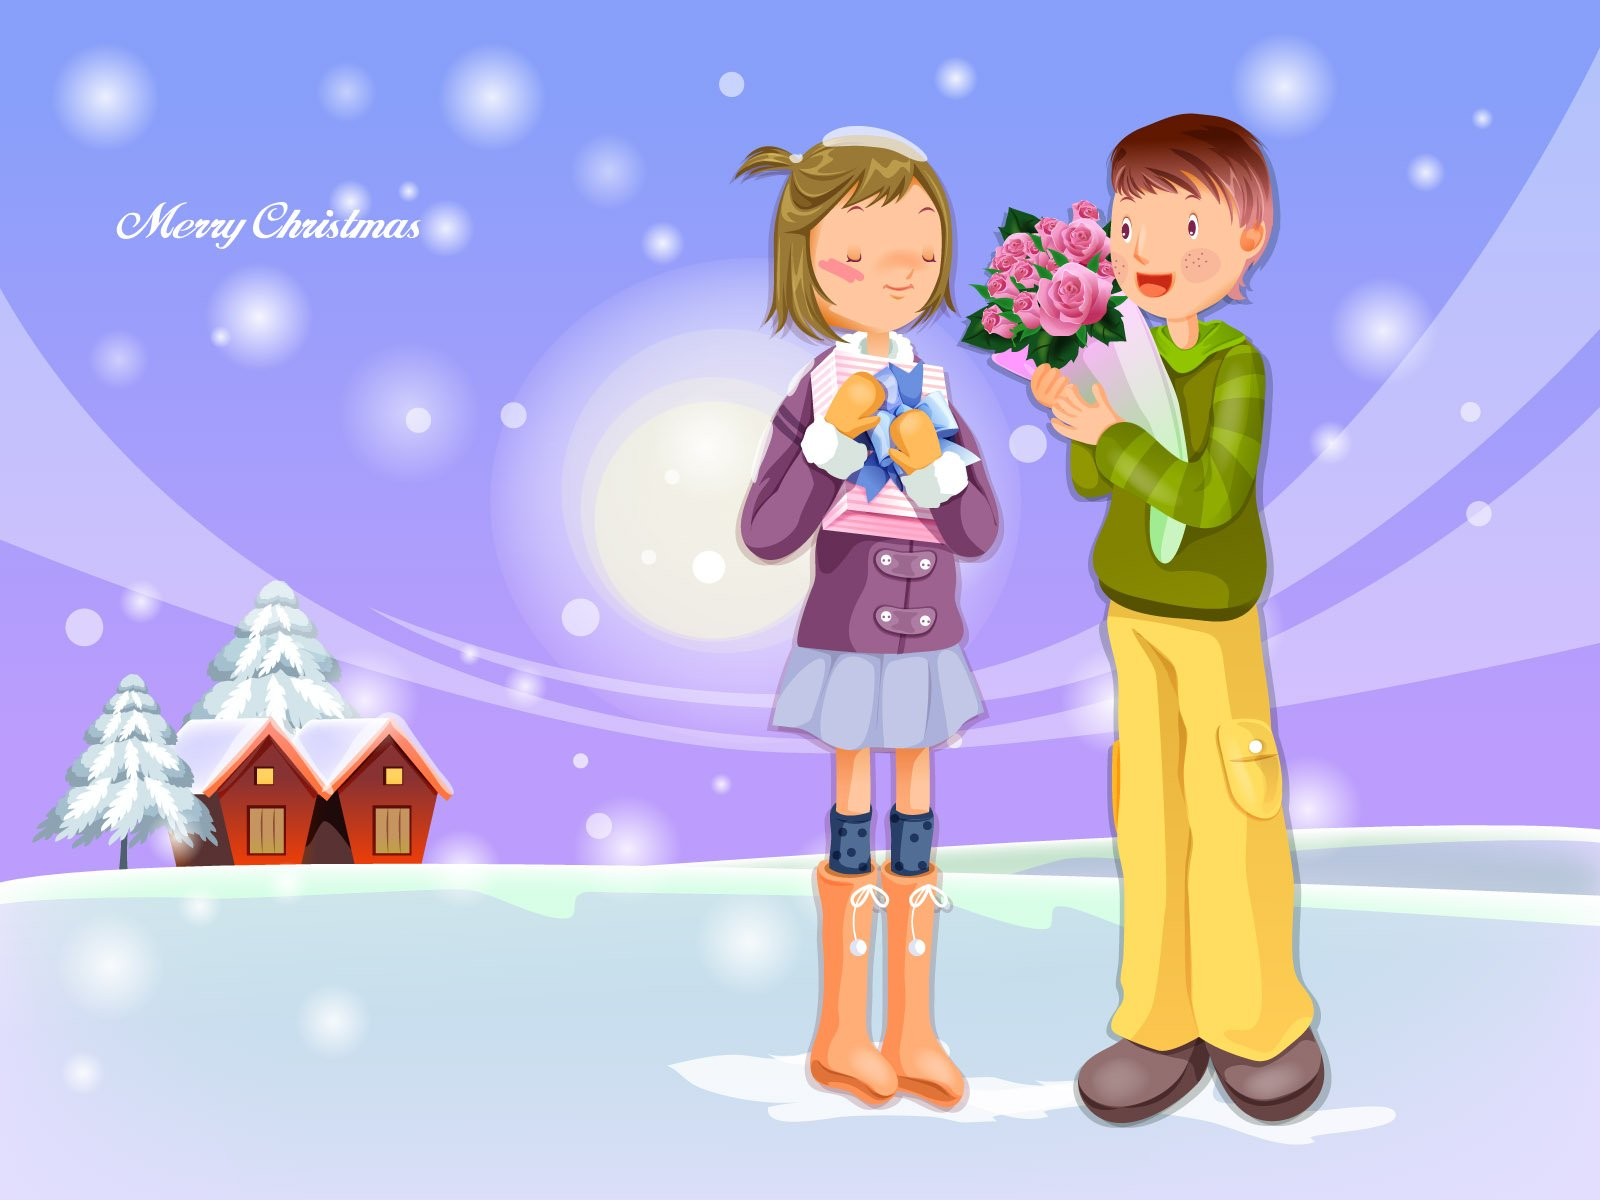 Wallpaper Of Cartoon Image Christmas Gifts Wallpaper World 1600x1200